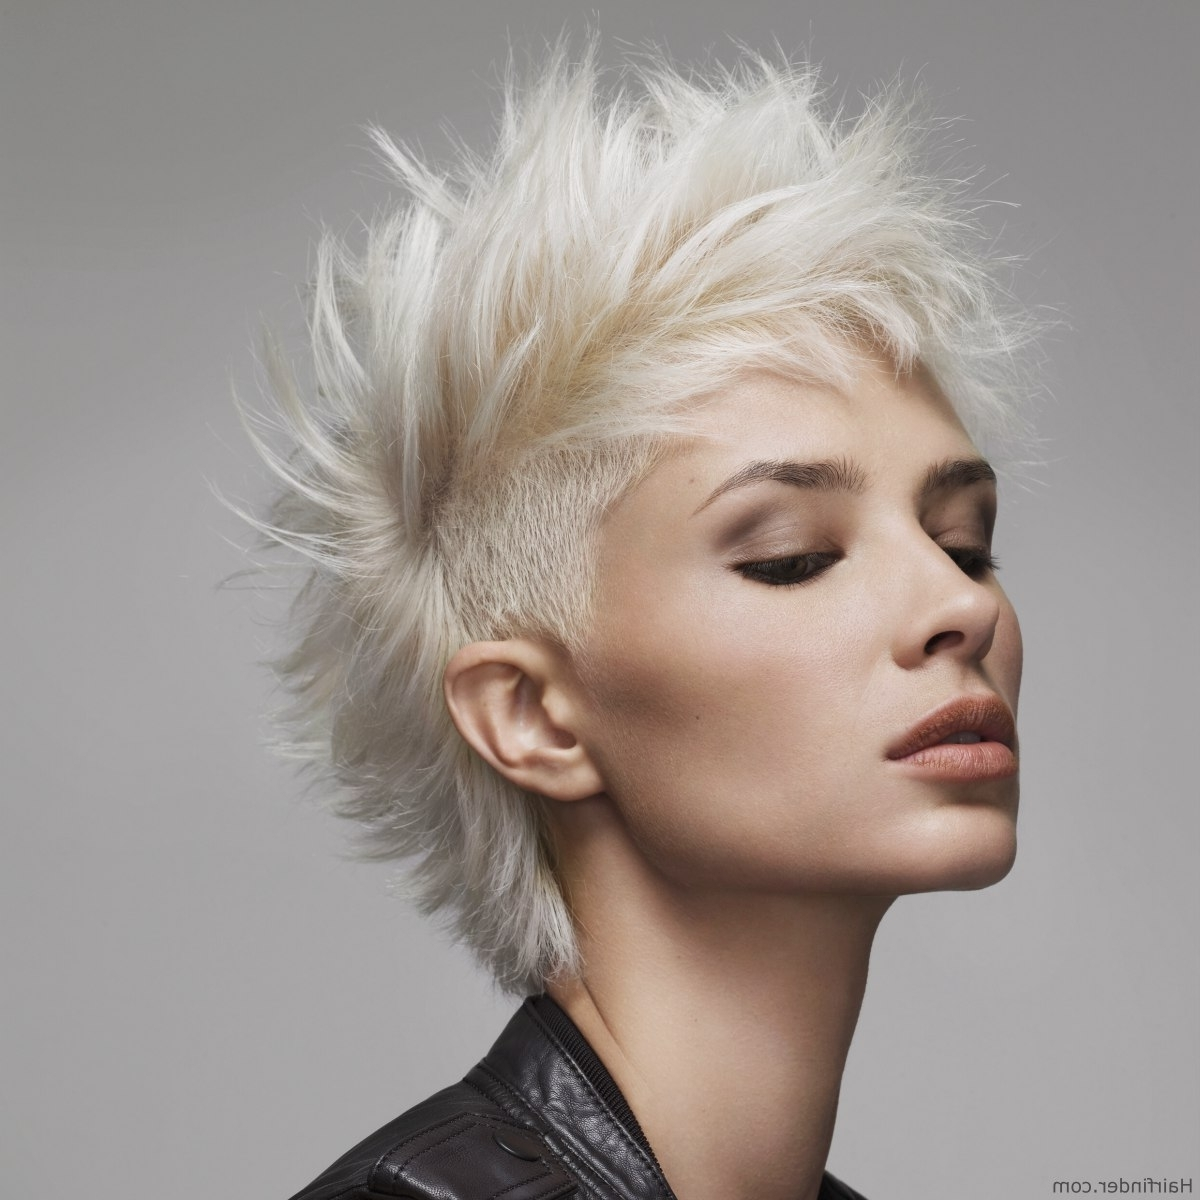 Short And Spiky Platinum Blonde Hair With An Undercut Throughout Well Known Spiked Blonde Mohawk Hairstyles (View 3 of 20)